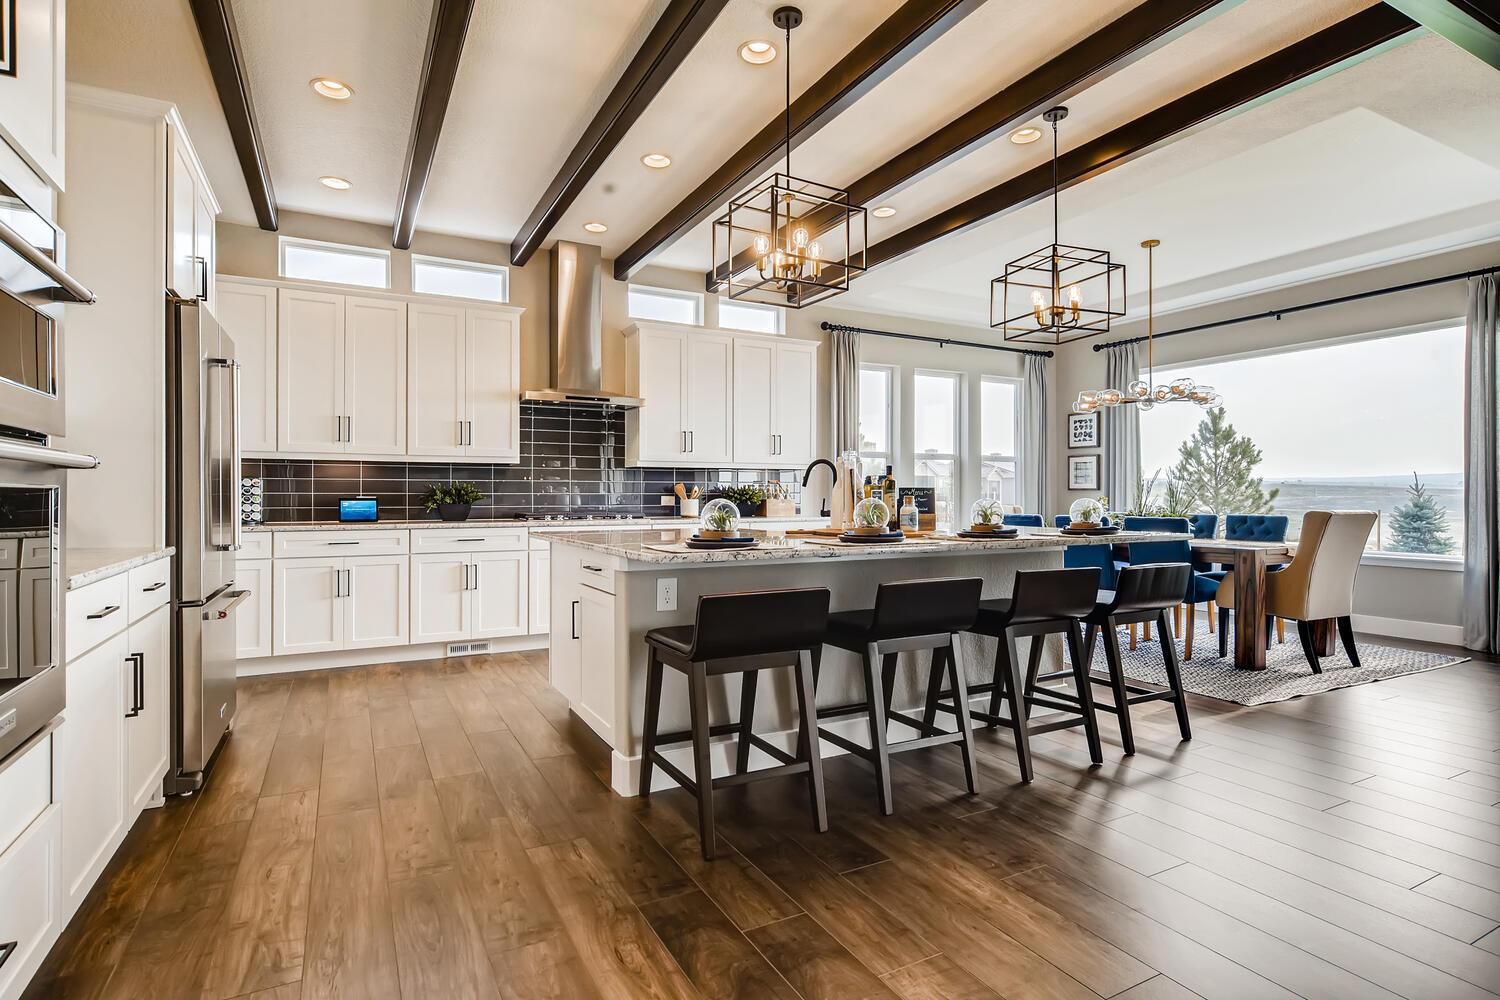 Kitchen featured in the Grandview By Classic Homes in Colorado Springs, CO